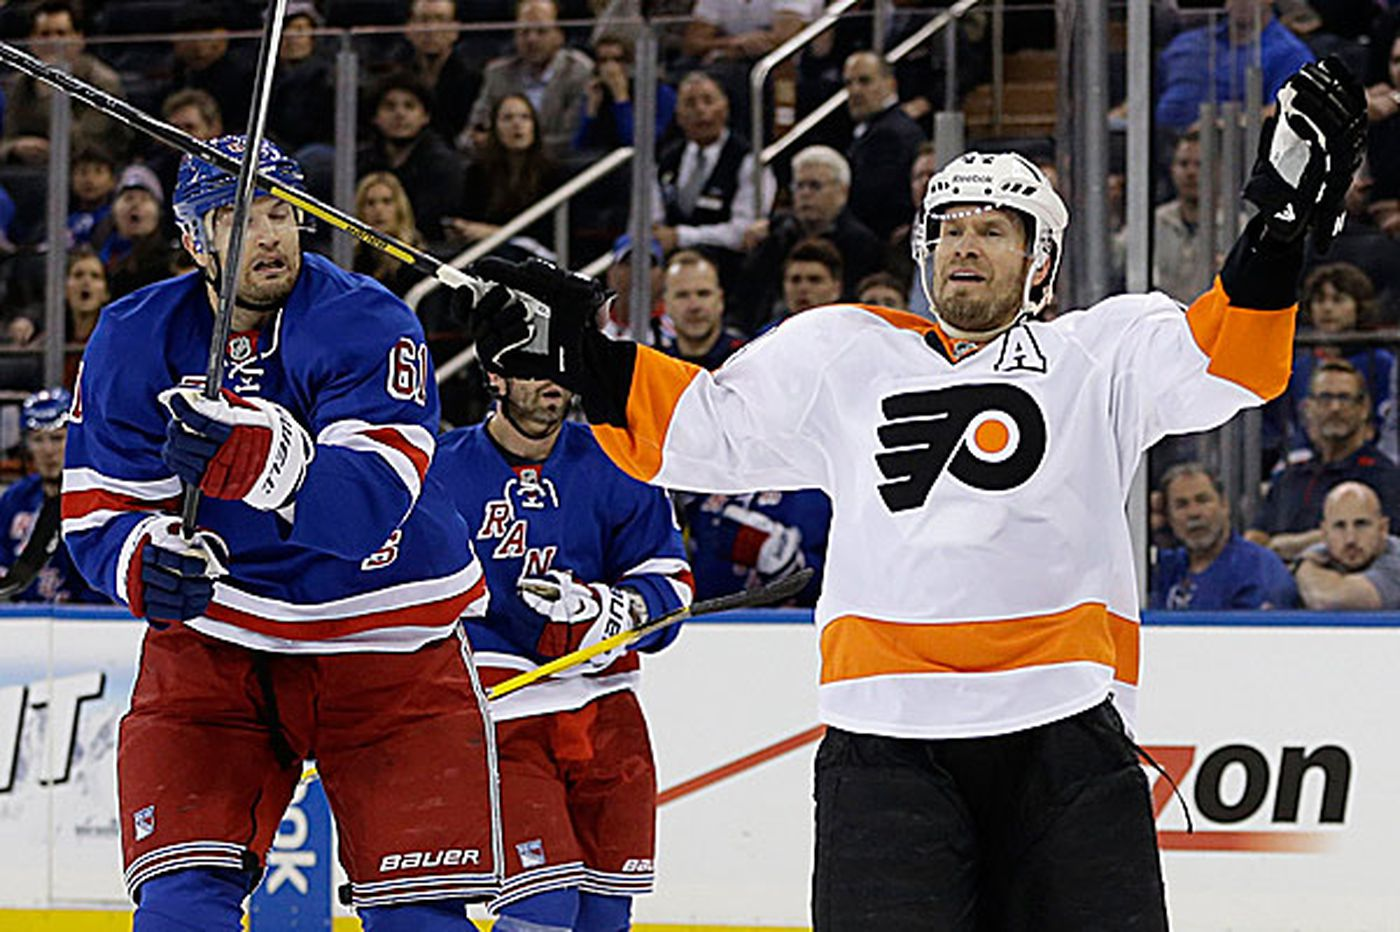 Flyers Notes: Rangers simply stronger at even strength